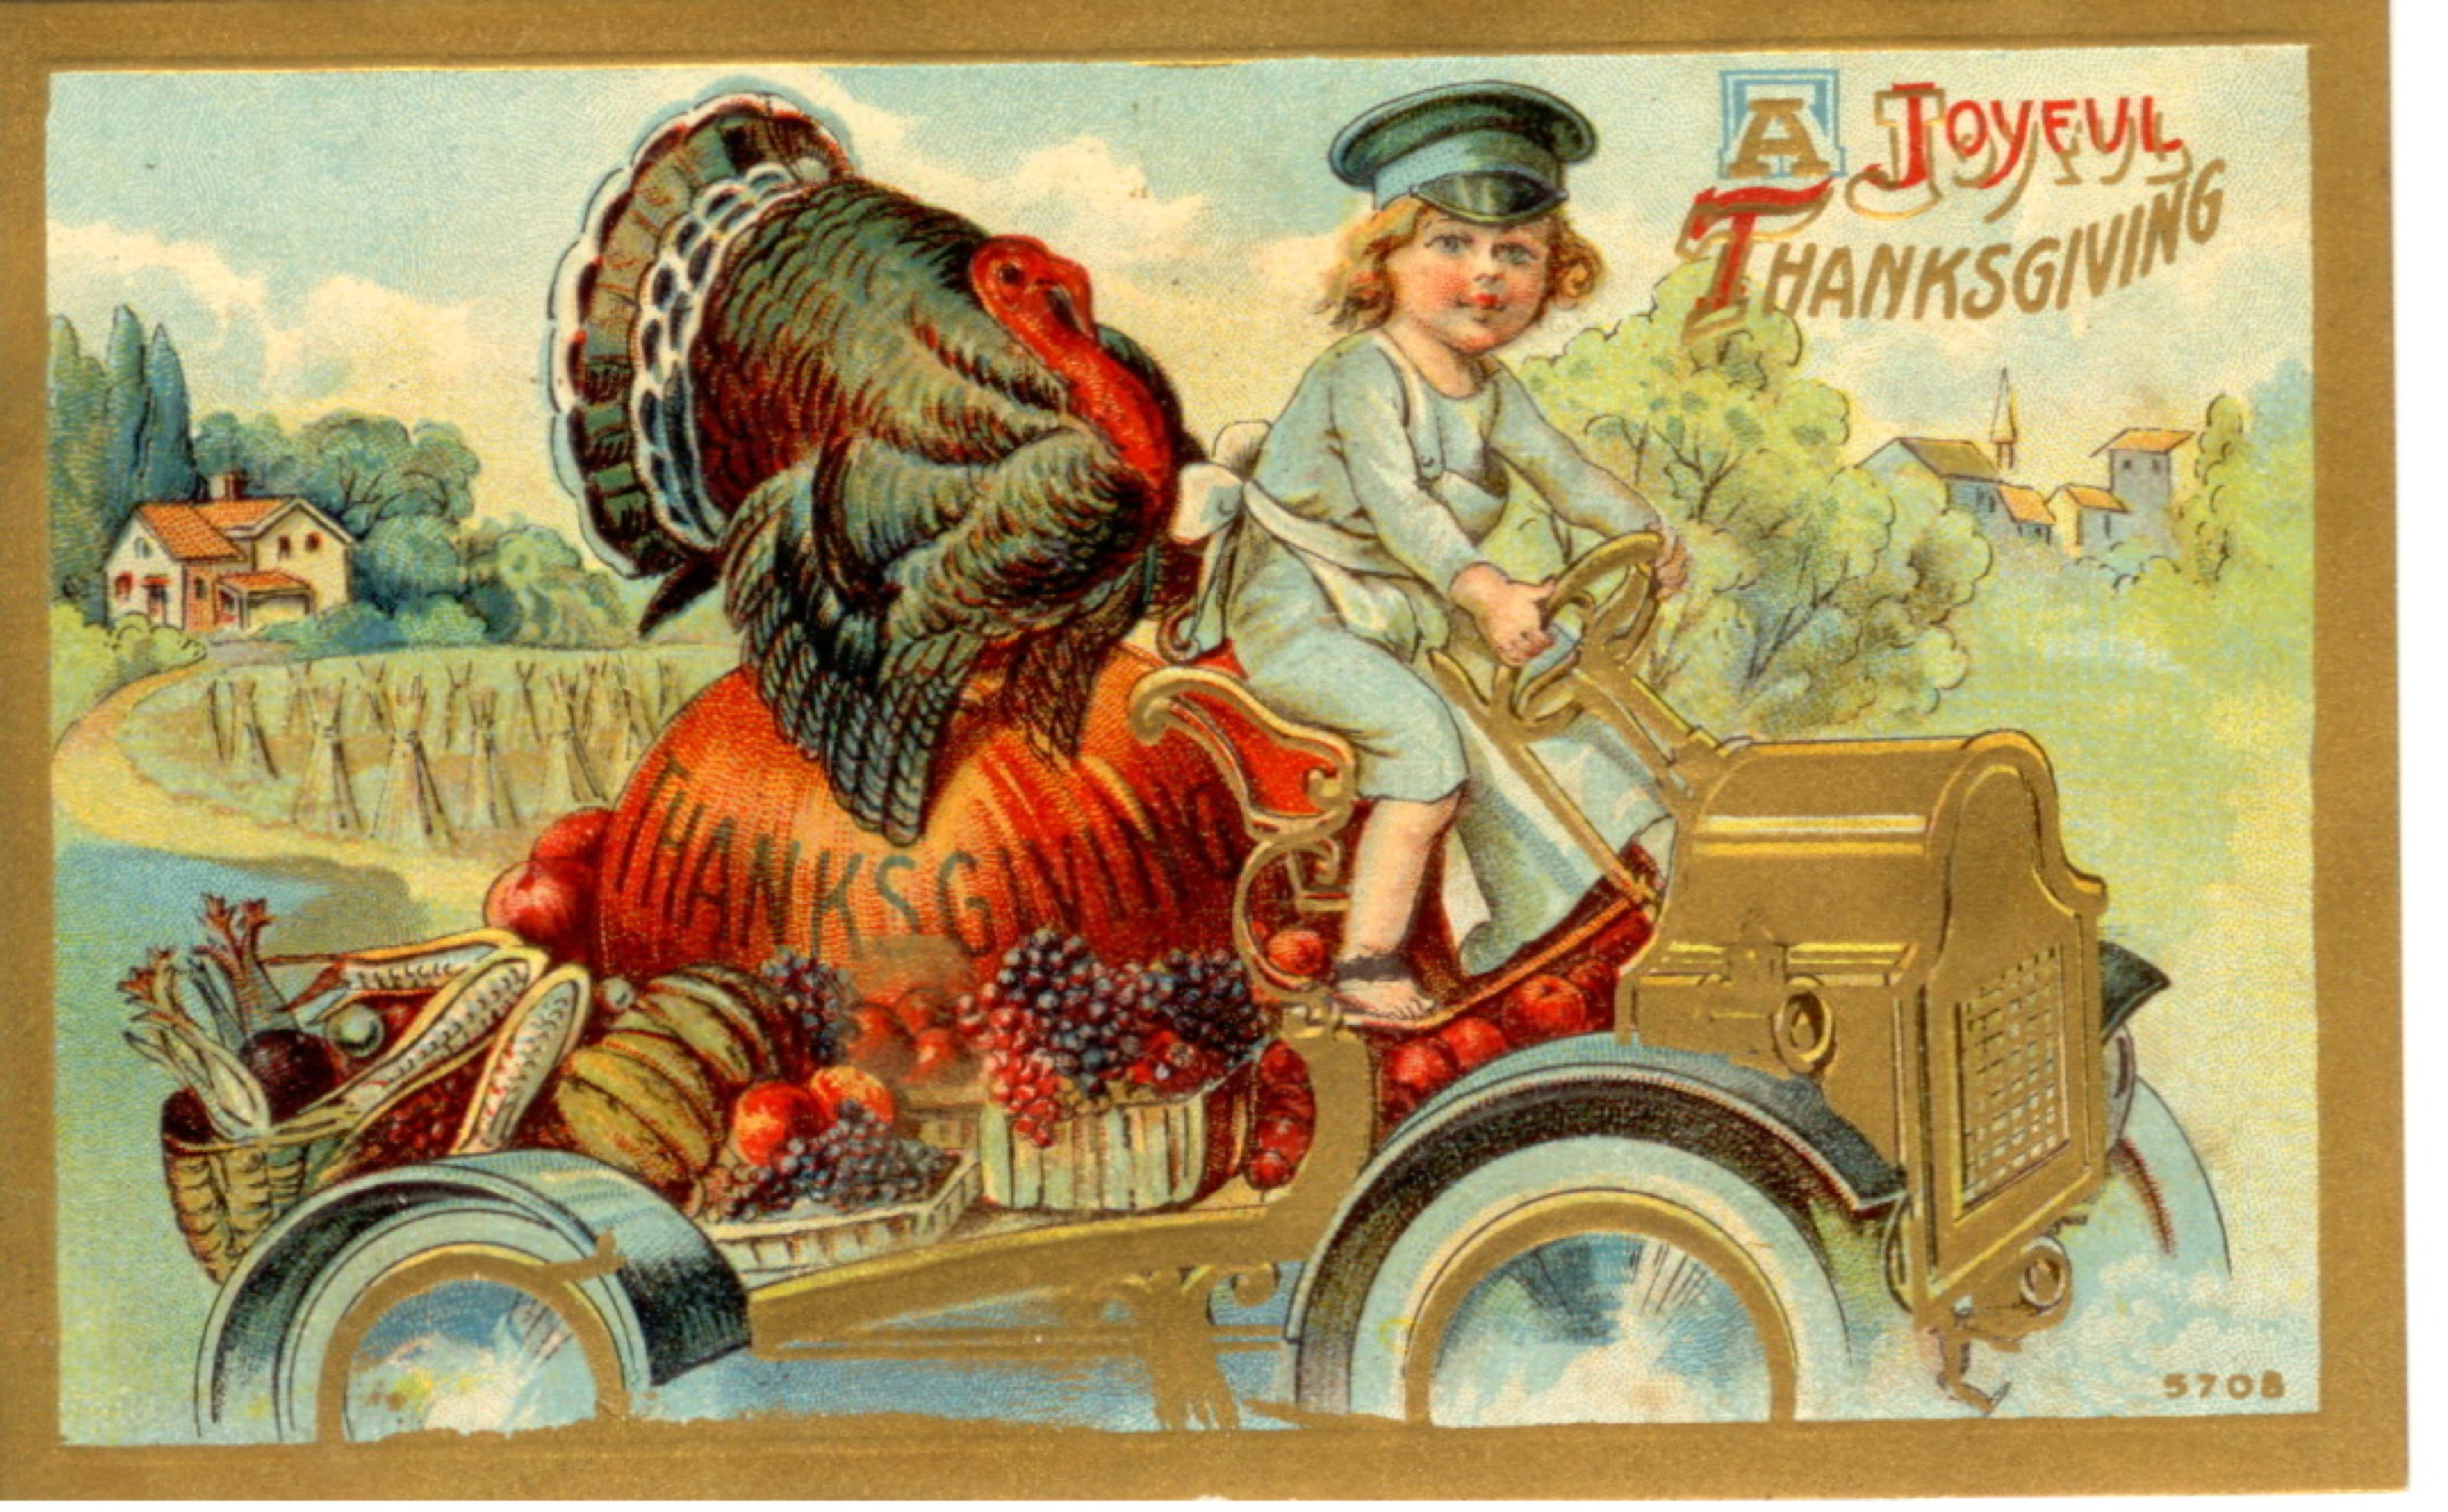 https://jonathanturley.files.wordpress.com/2016/11/stock-graphics-vintage-thanksgiving-postcard-00305-1.jpg